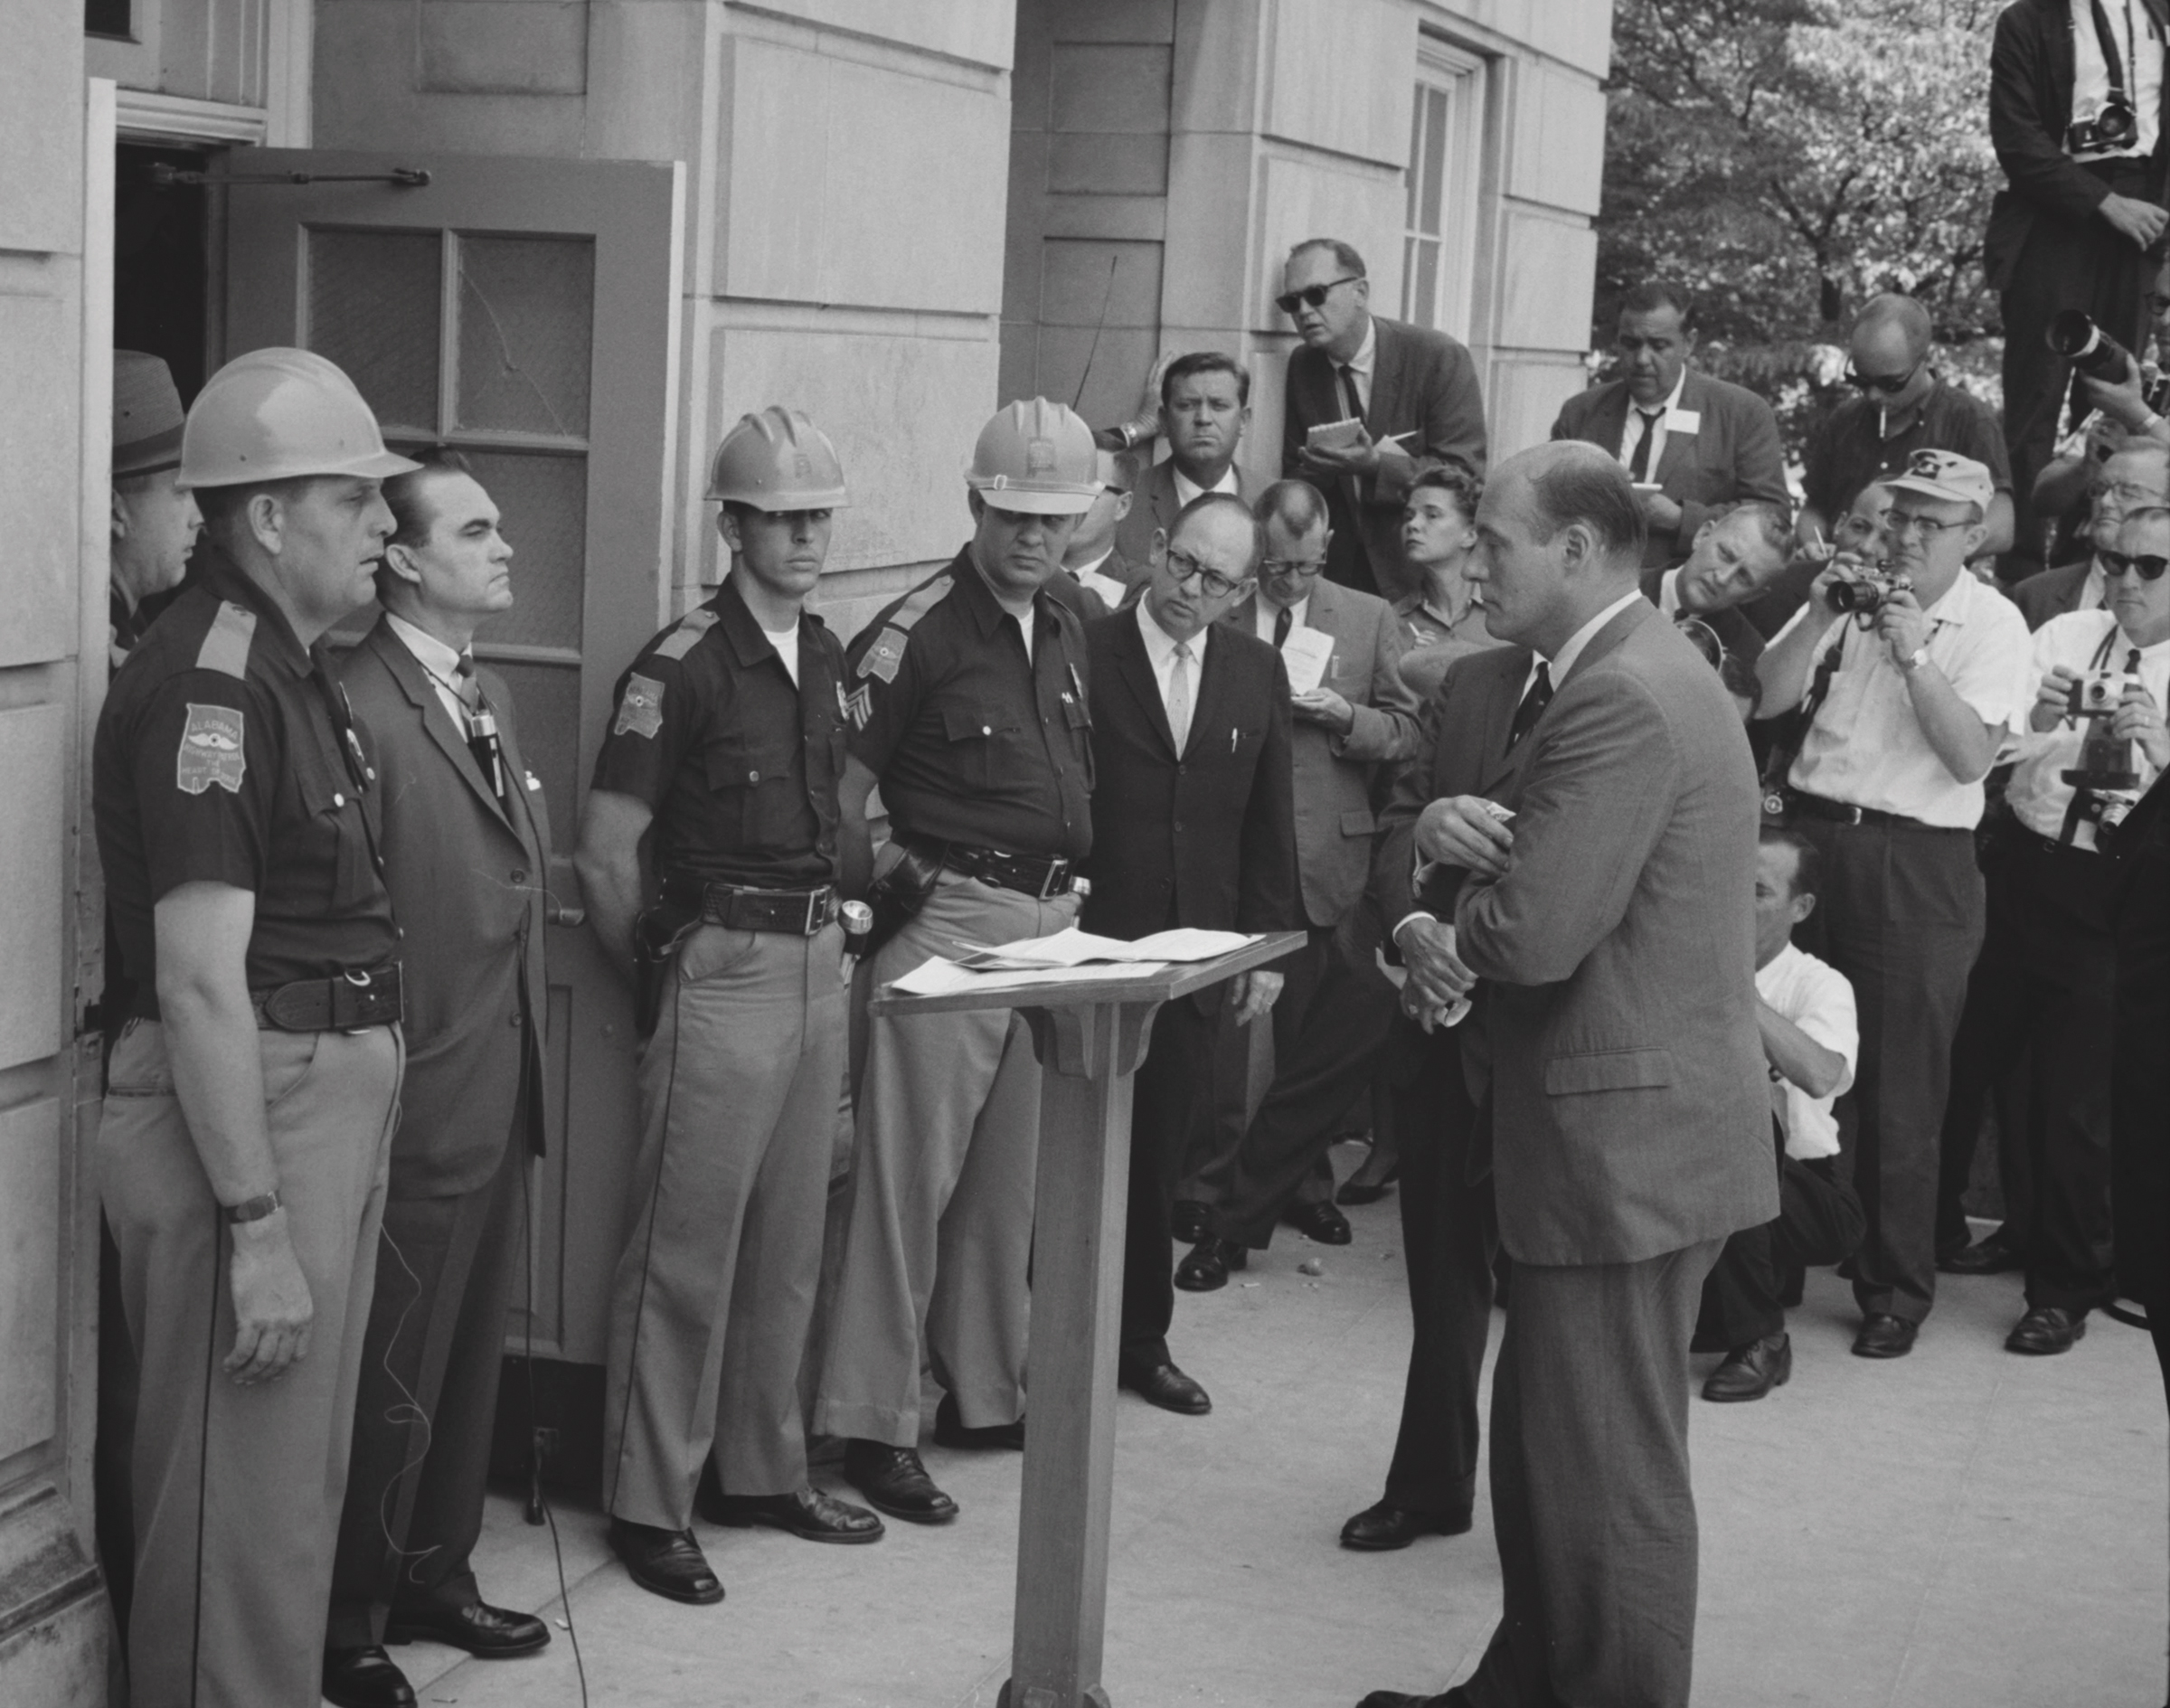 Attempting to block integration at the University of Alabama, Governor George Wallace stands defiantly at the door while being confronted by Deputy U.S. Attorney General Nicholas Katzenbach. (Photo: Warren K. Leffler, U.S. News & World Report Magazine [Public domain]/Wikimedia Commons)